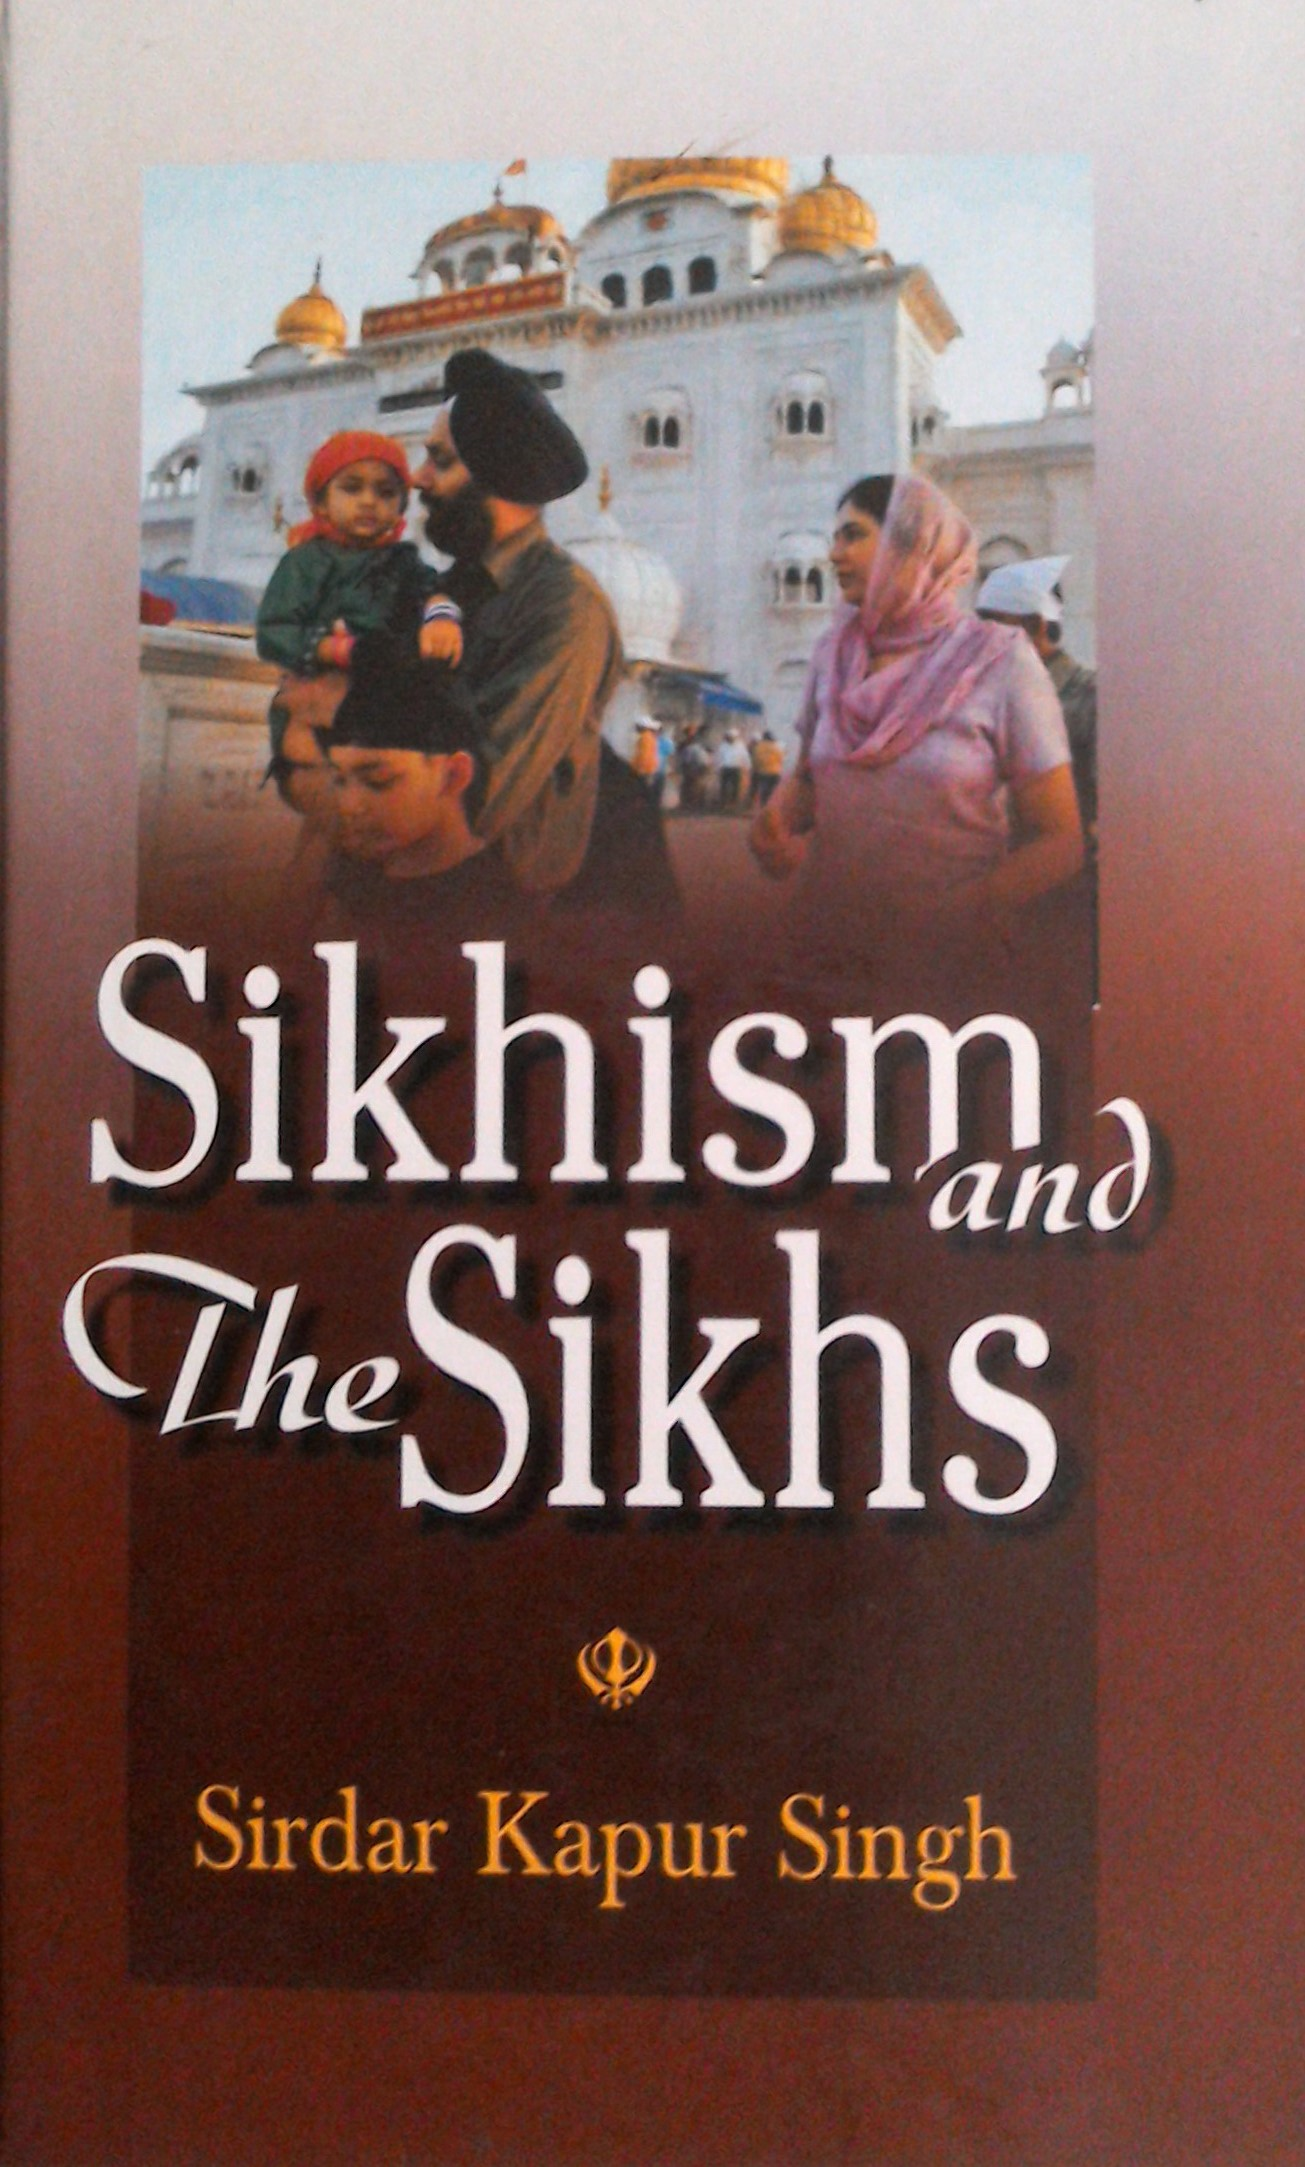 Sikhism and the Sikhs